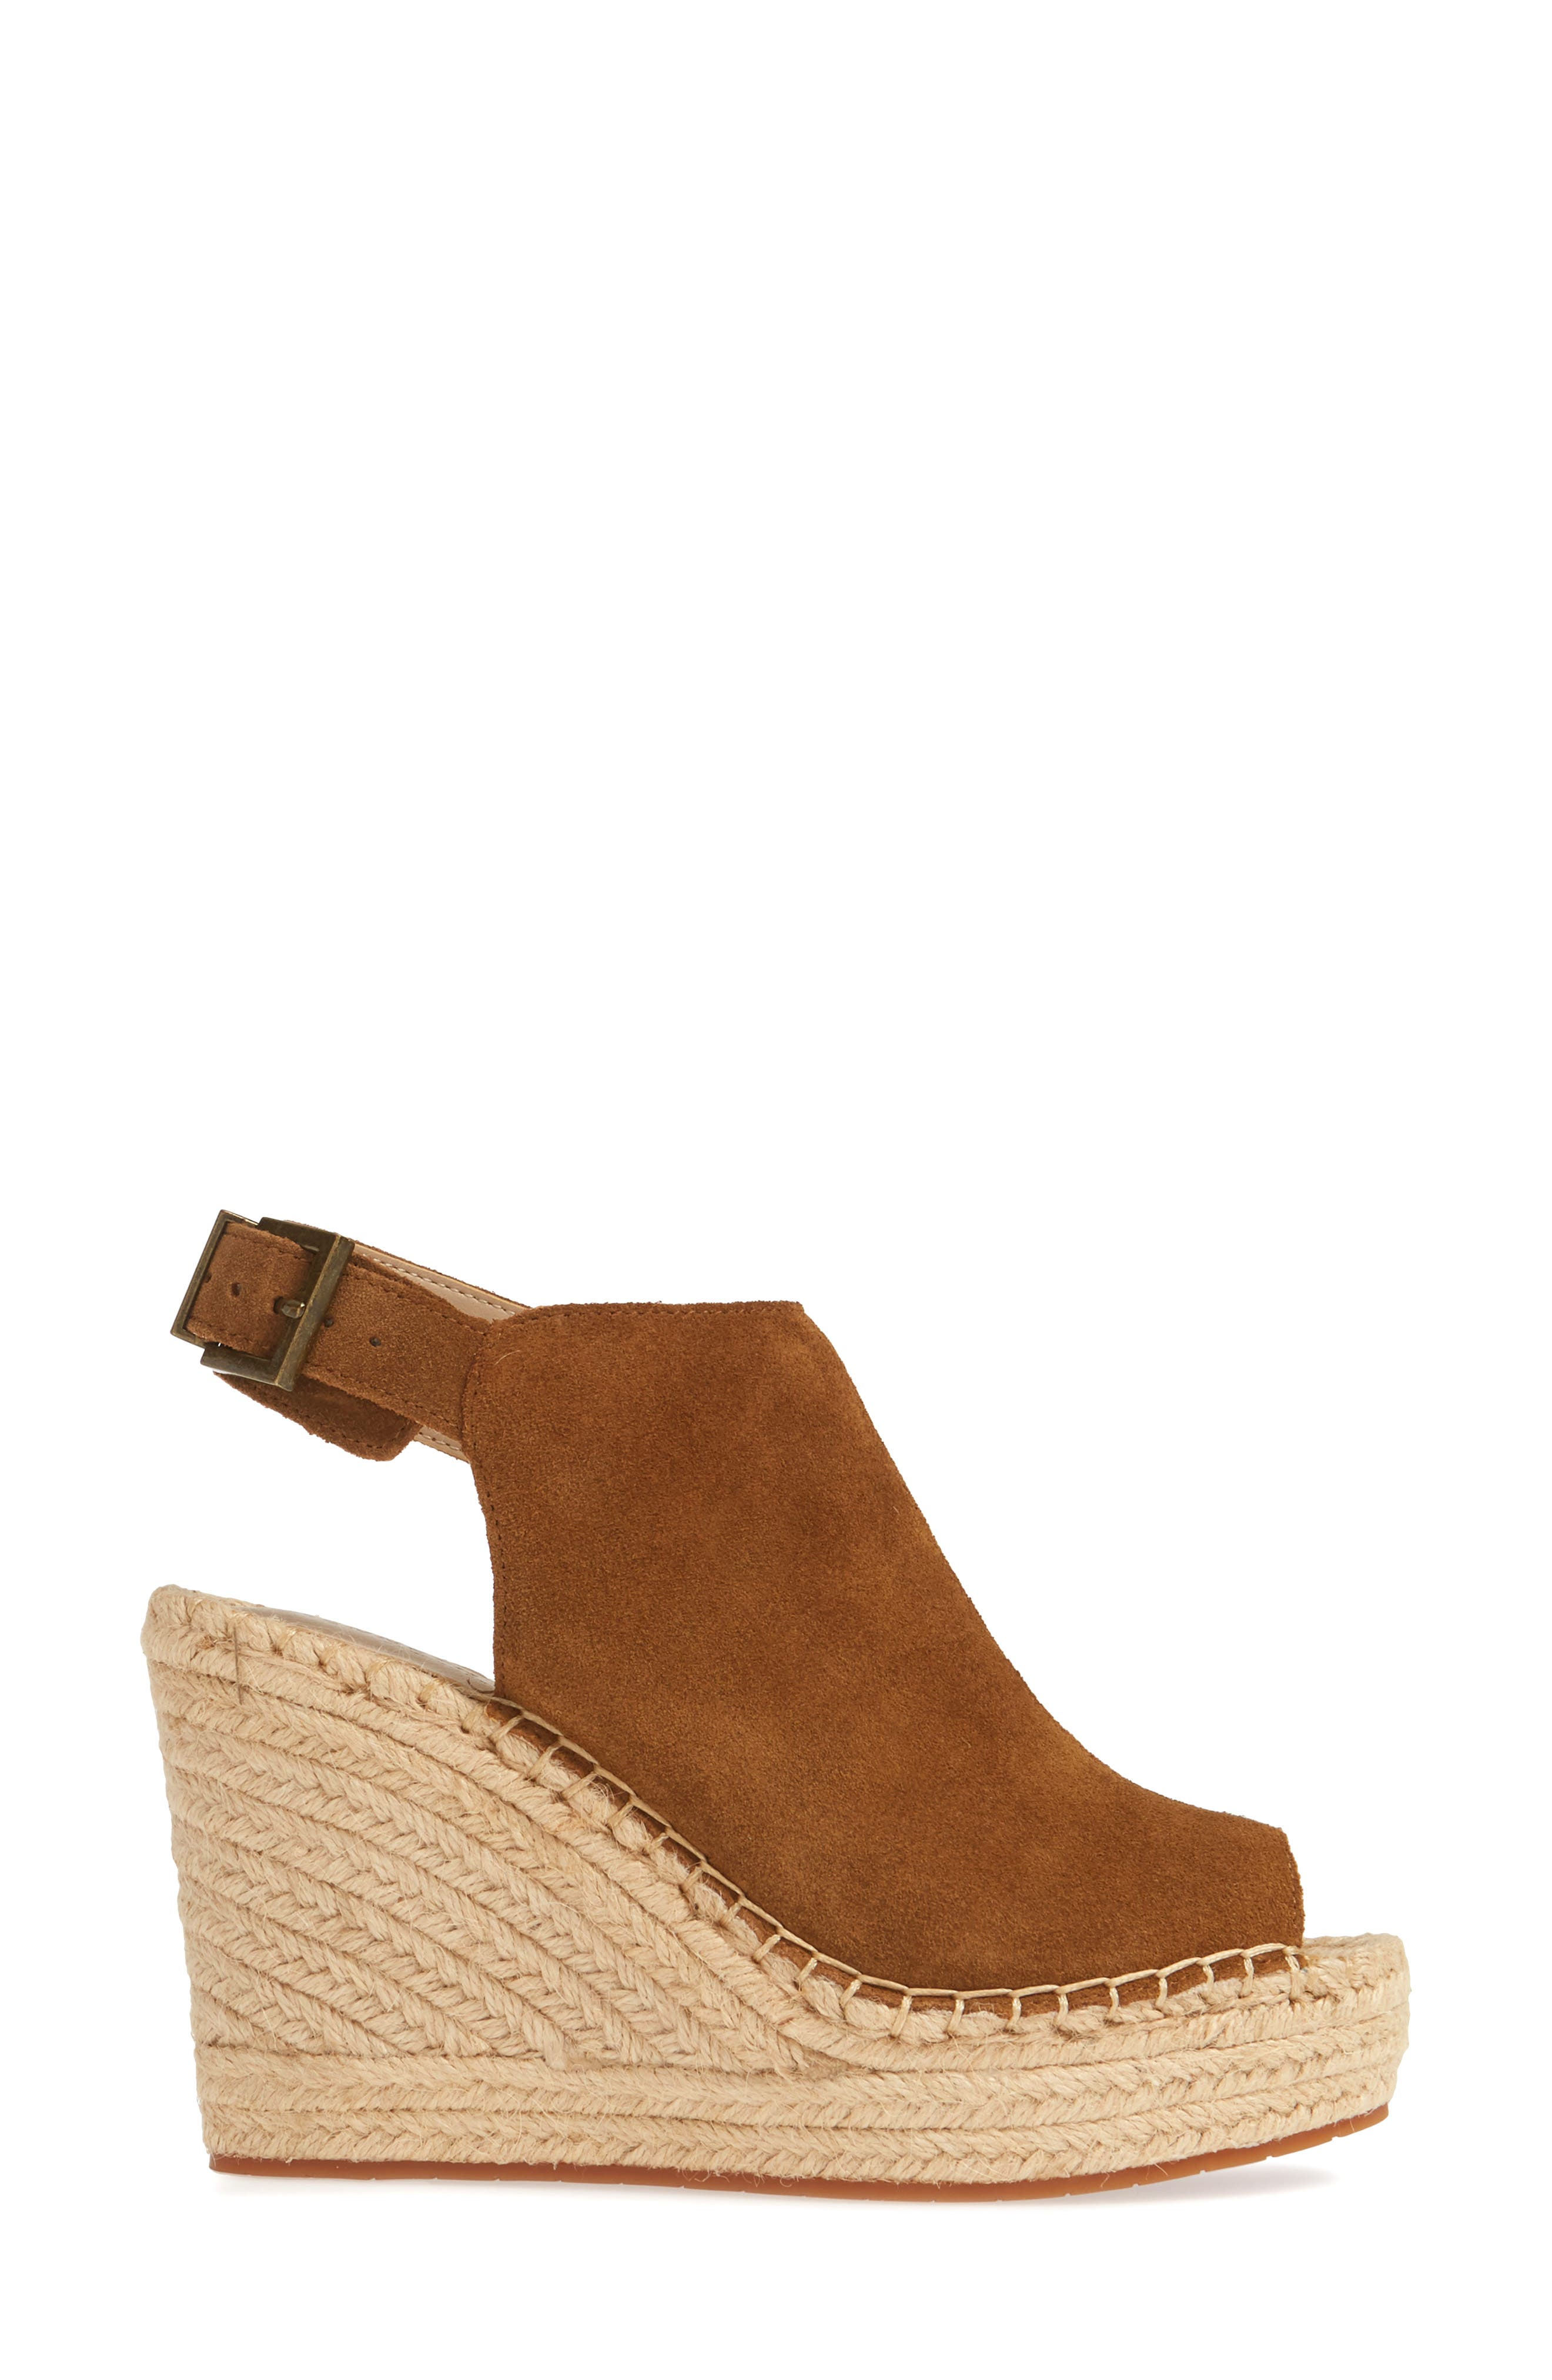 KENNETH COLE NEW YORK, 'Olivia' Espadrille Wedge Sandal, Alternate thumbnail 3, color, RUST SUEDE